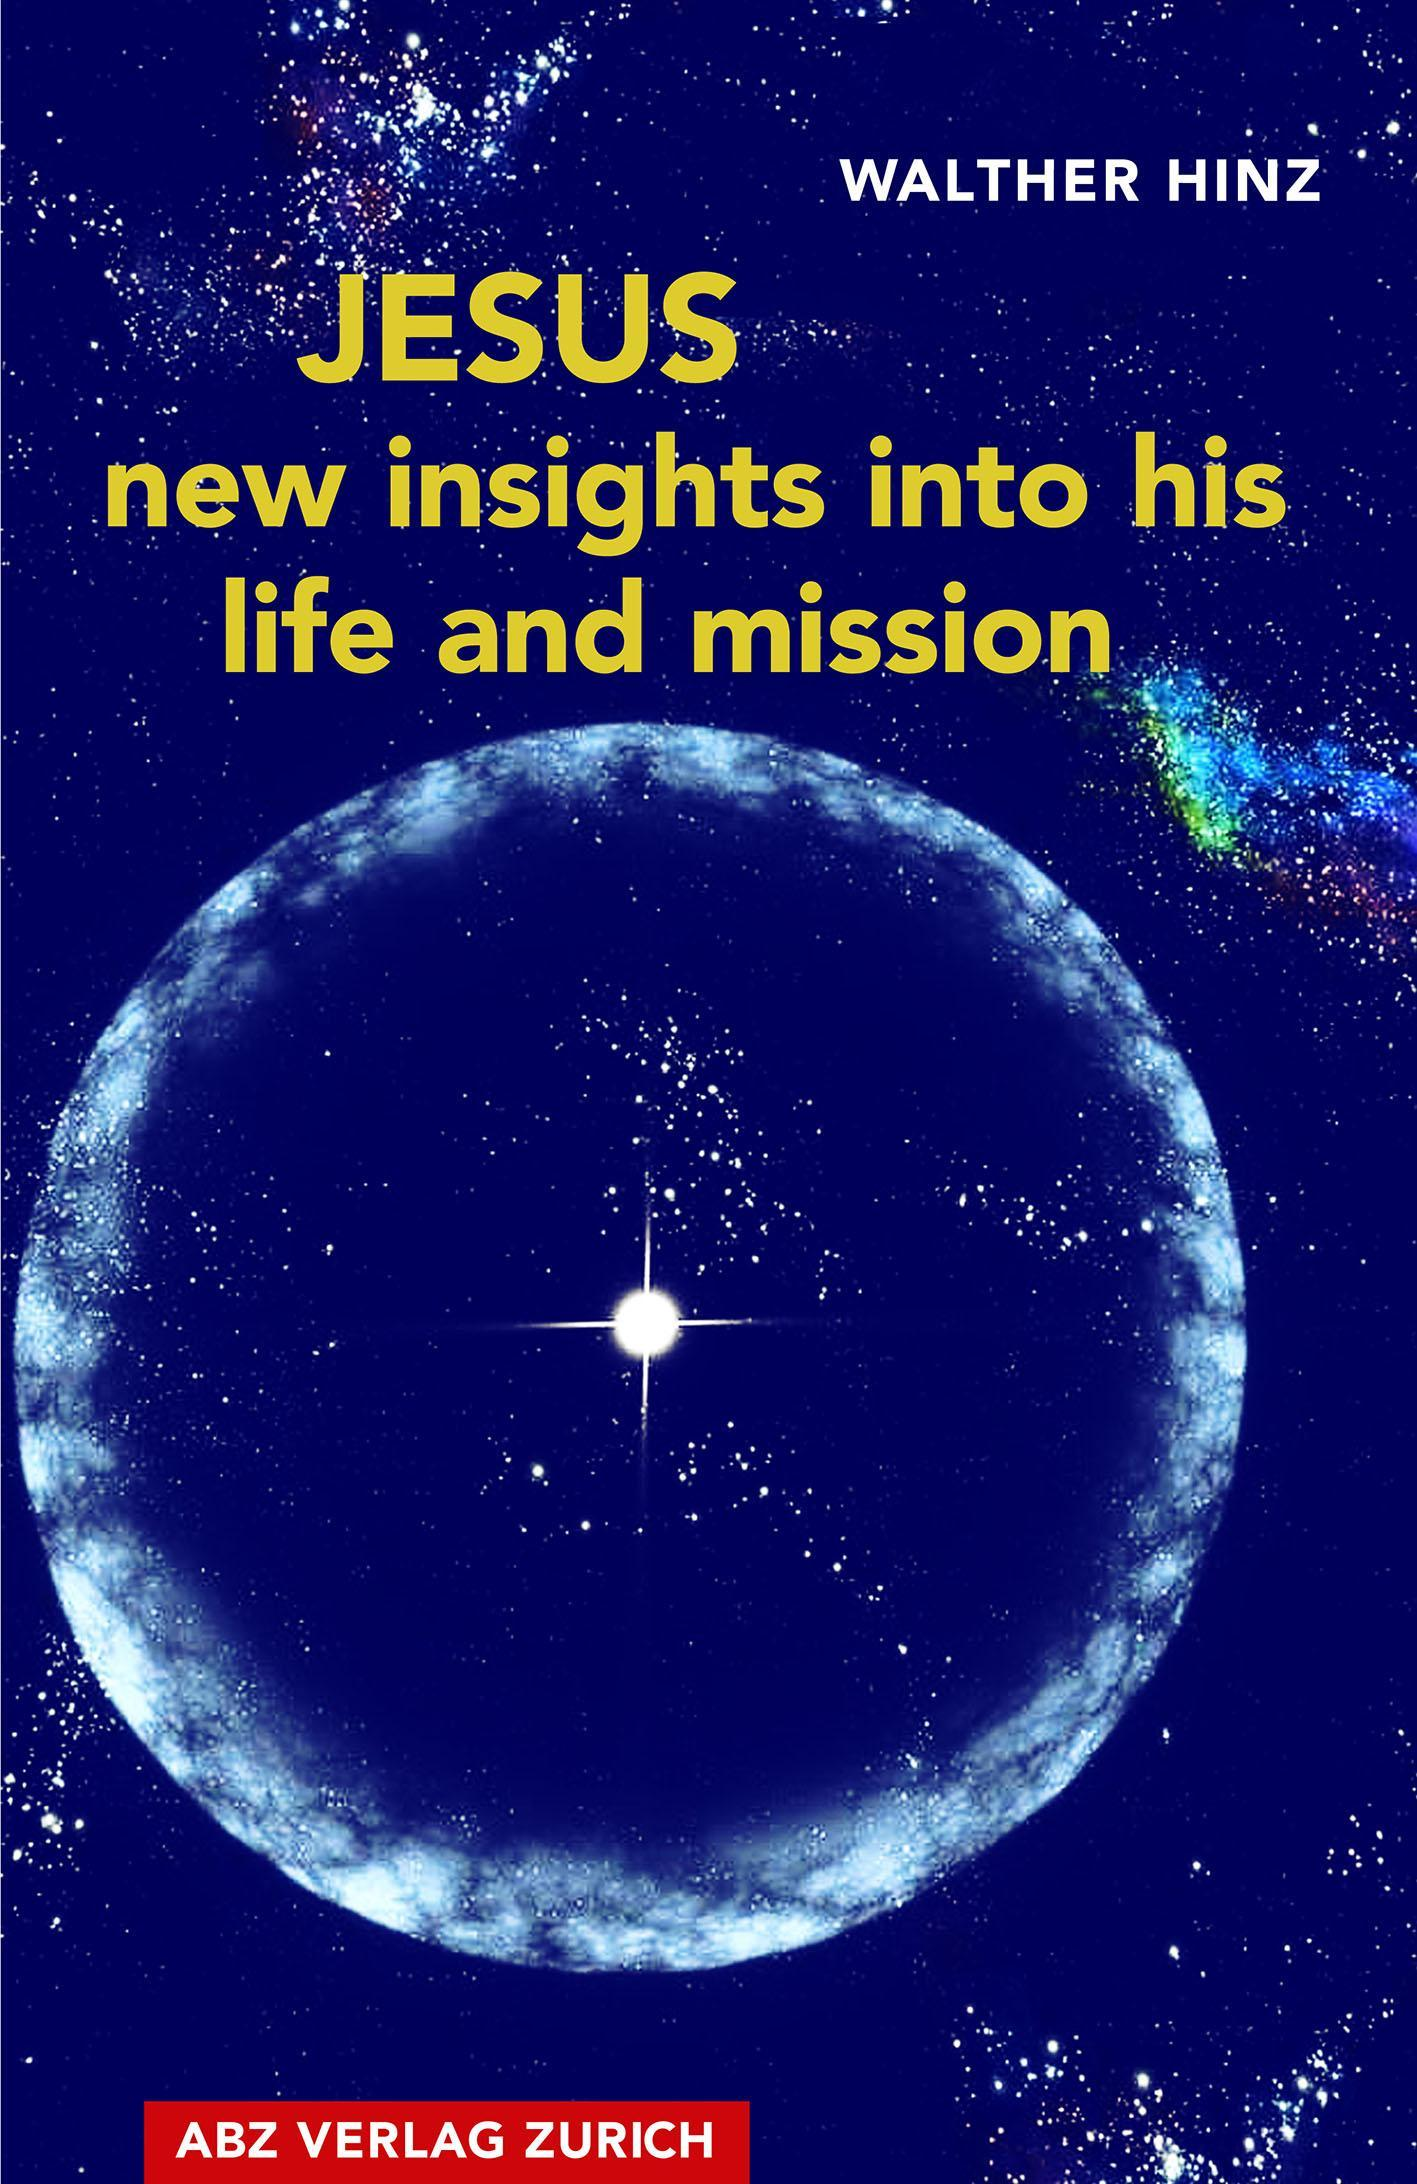 Cover of the Book Jesus – New Insights into His Life and Mission by Walther Hinz, based on Messages from Medium Beatrice Brunner.